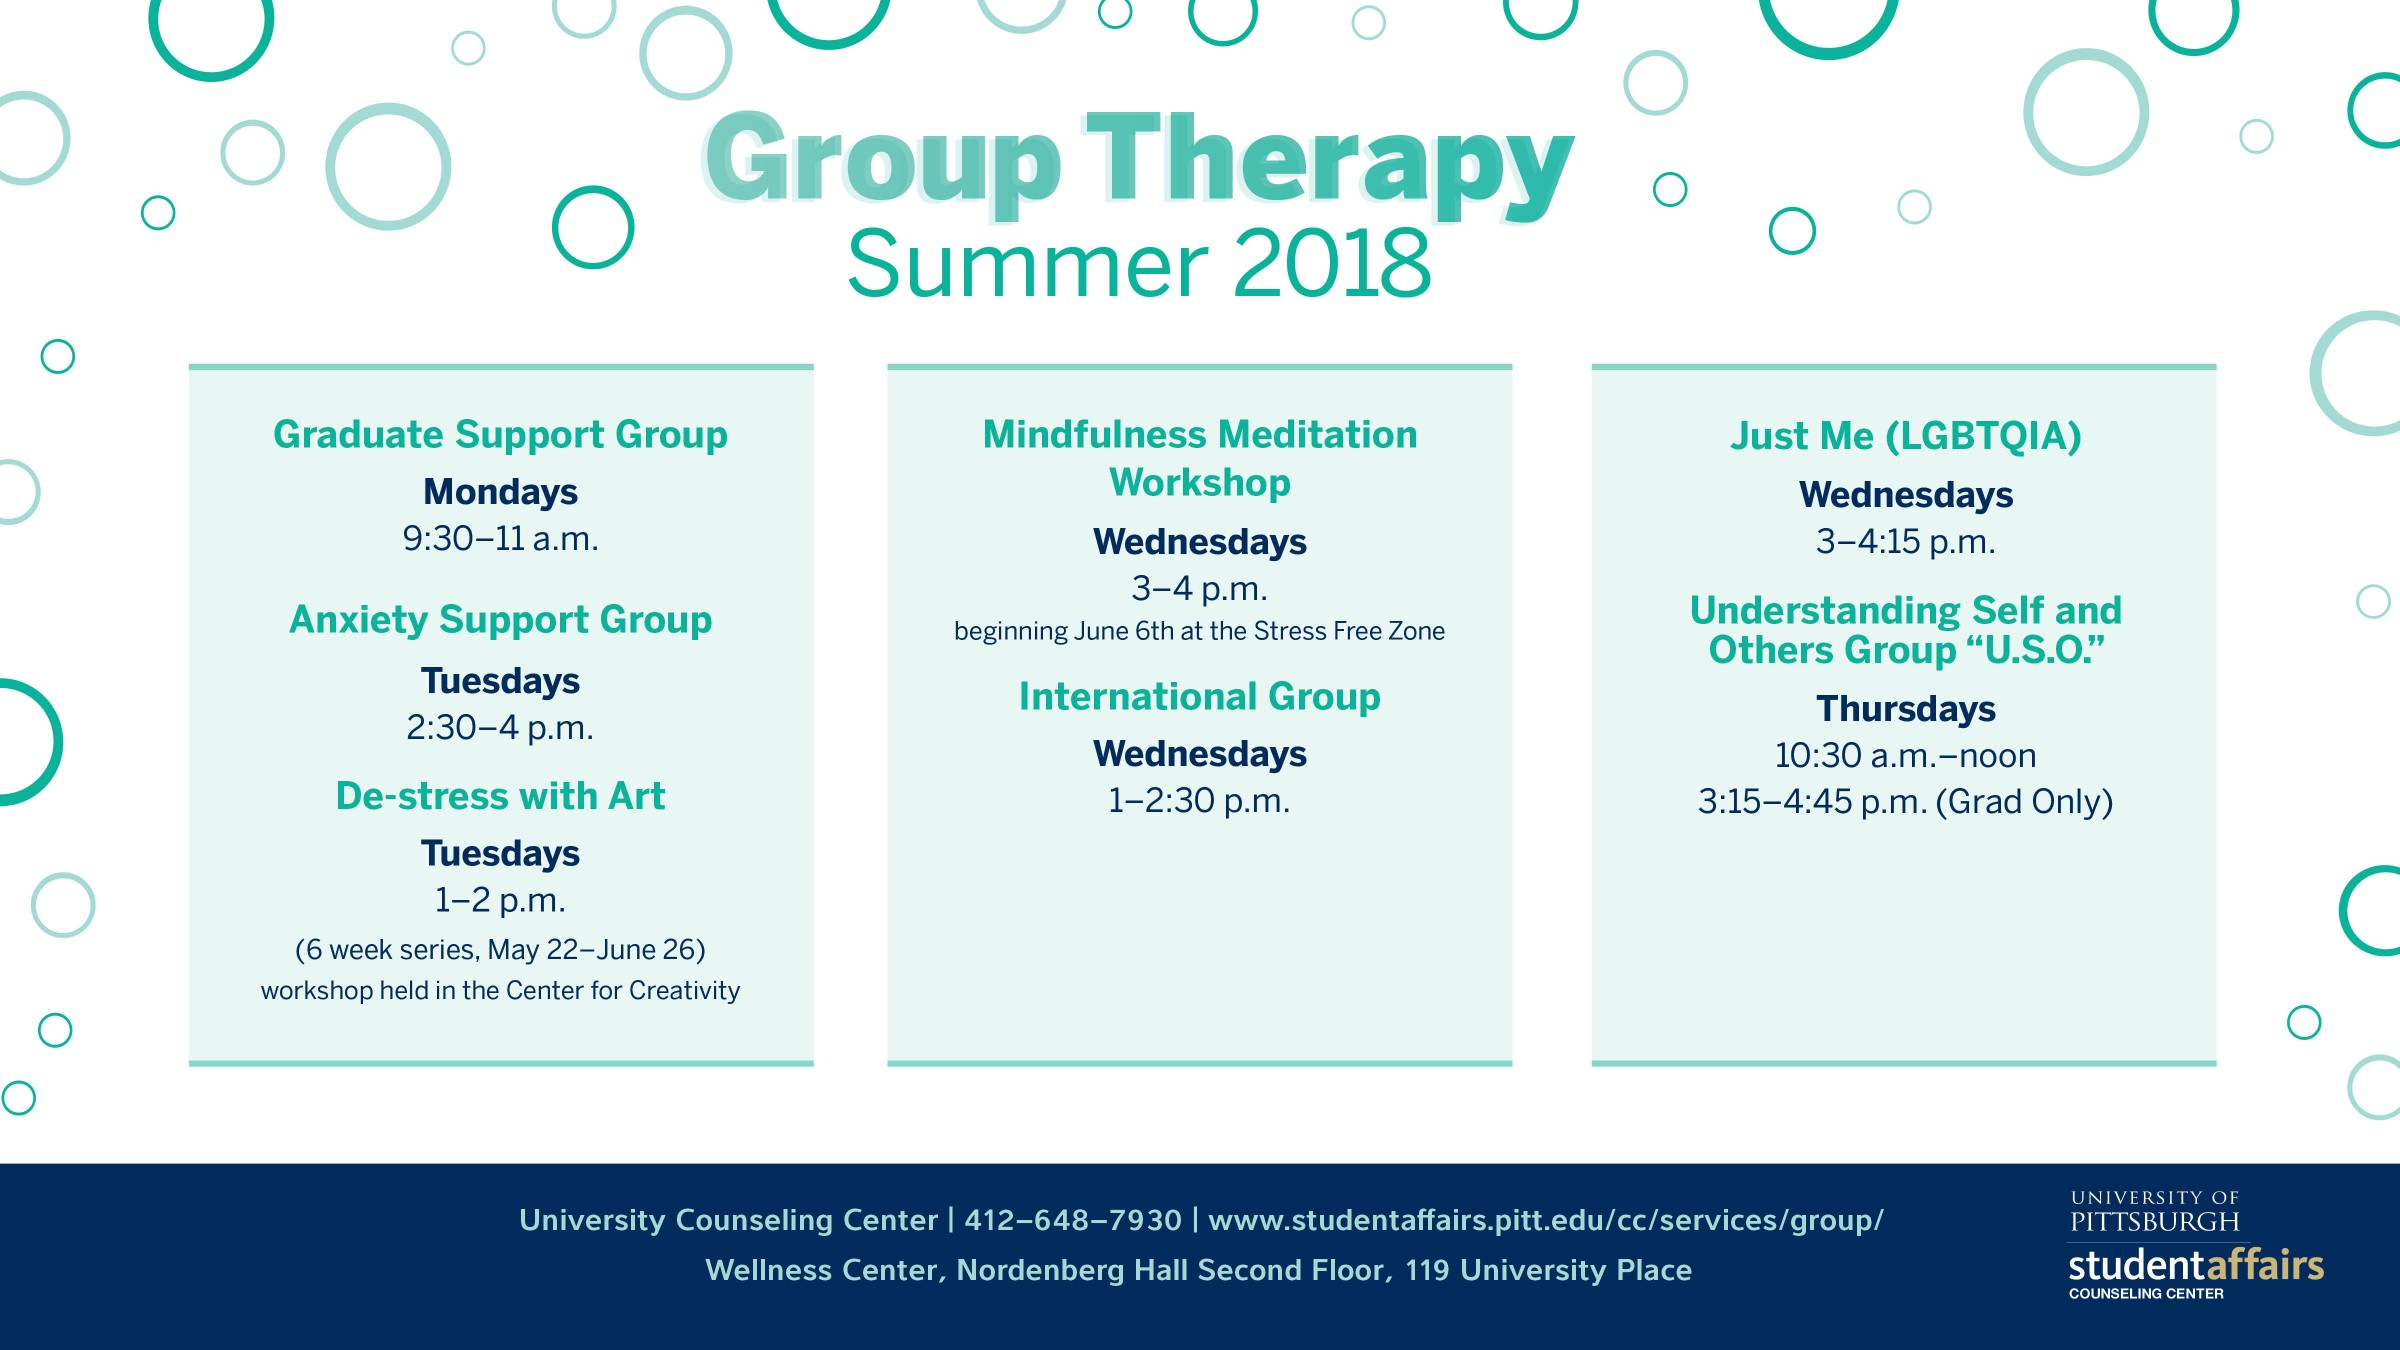 GroupTherapy_Summer2018_August 27